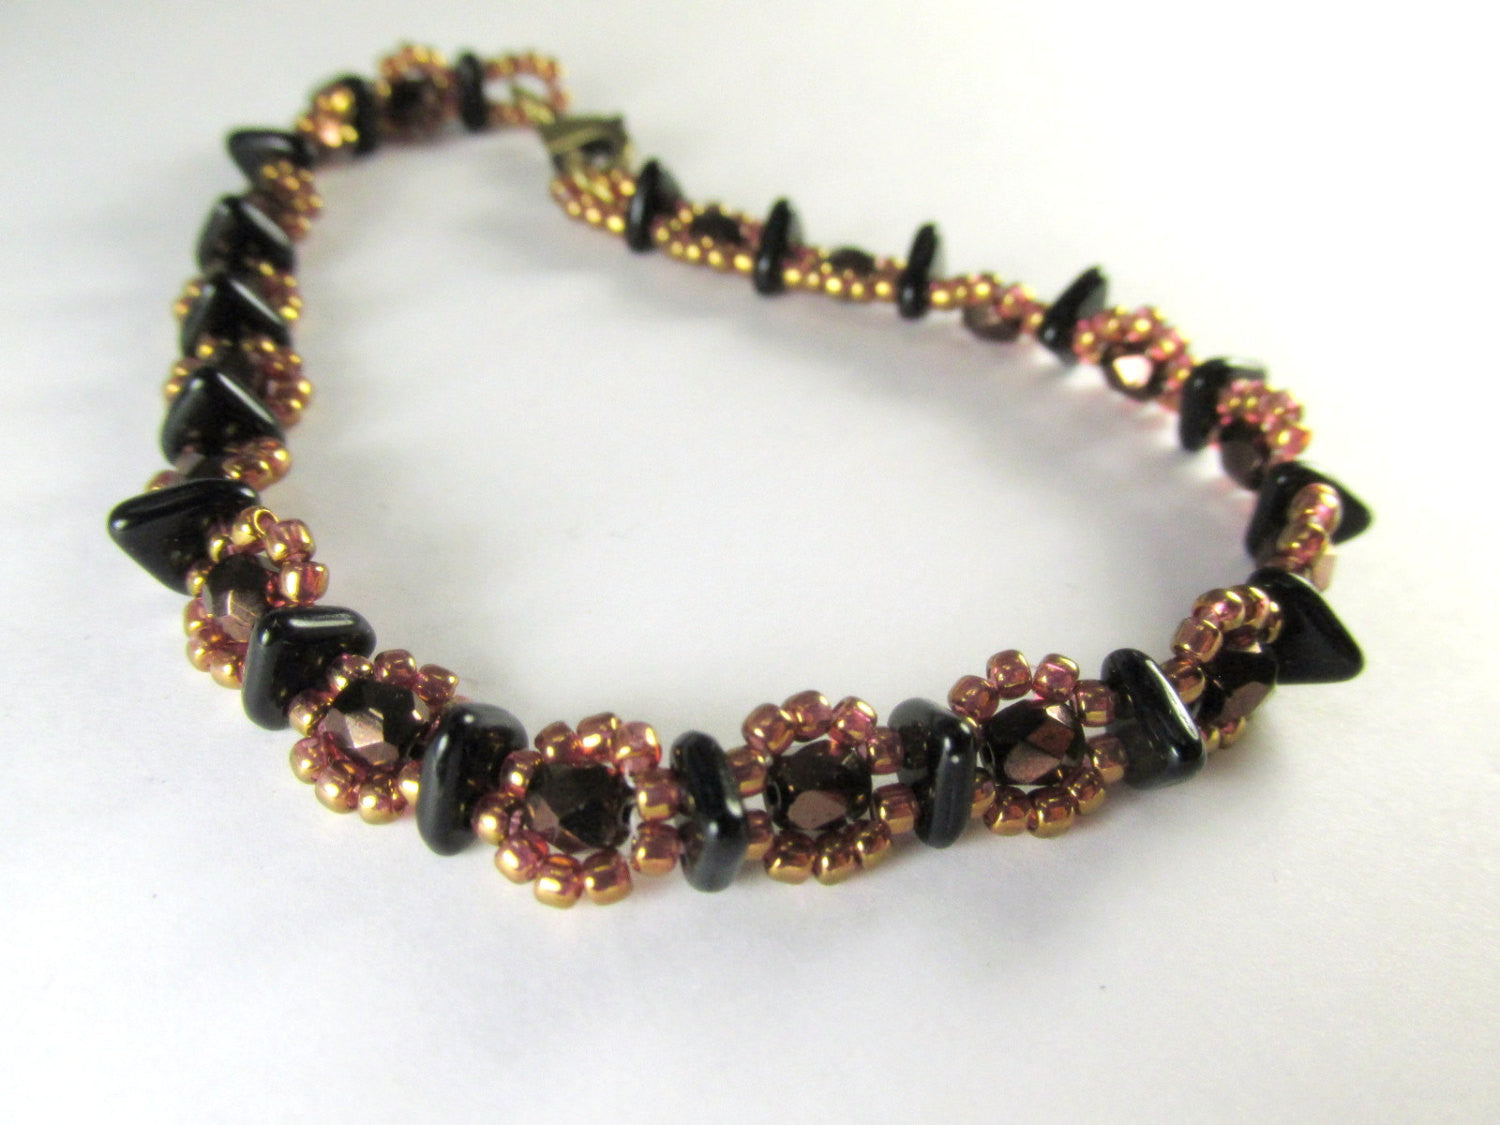 Black, Bronze and Rose Gold Beaded Bracelet handmade with Czech Glass Triangles, 4mm fire polished beads and bronze rosegold seed beads - Odyssey Creations